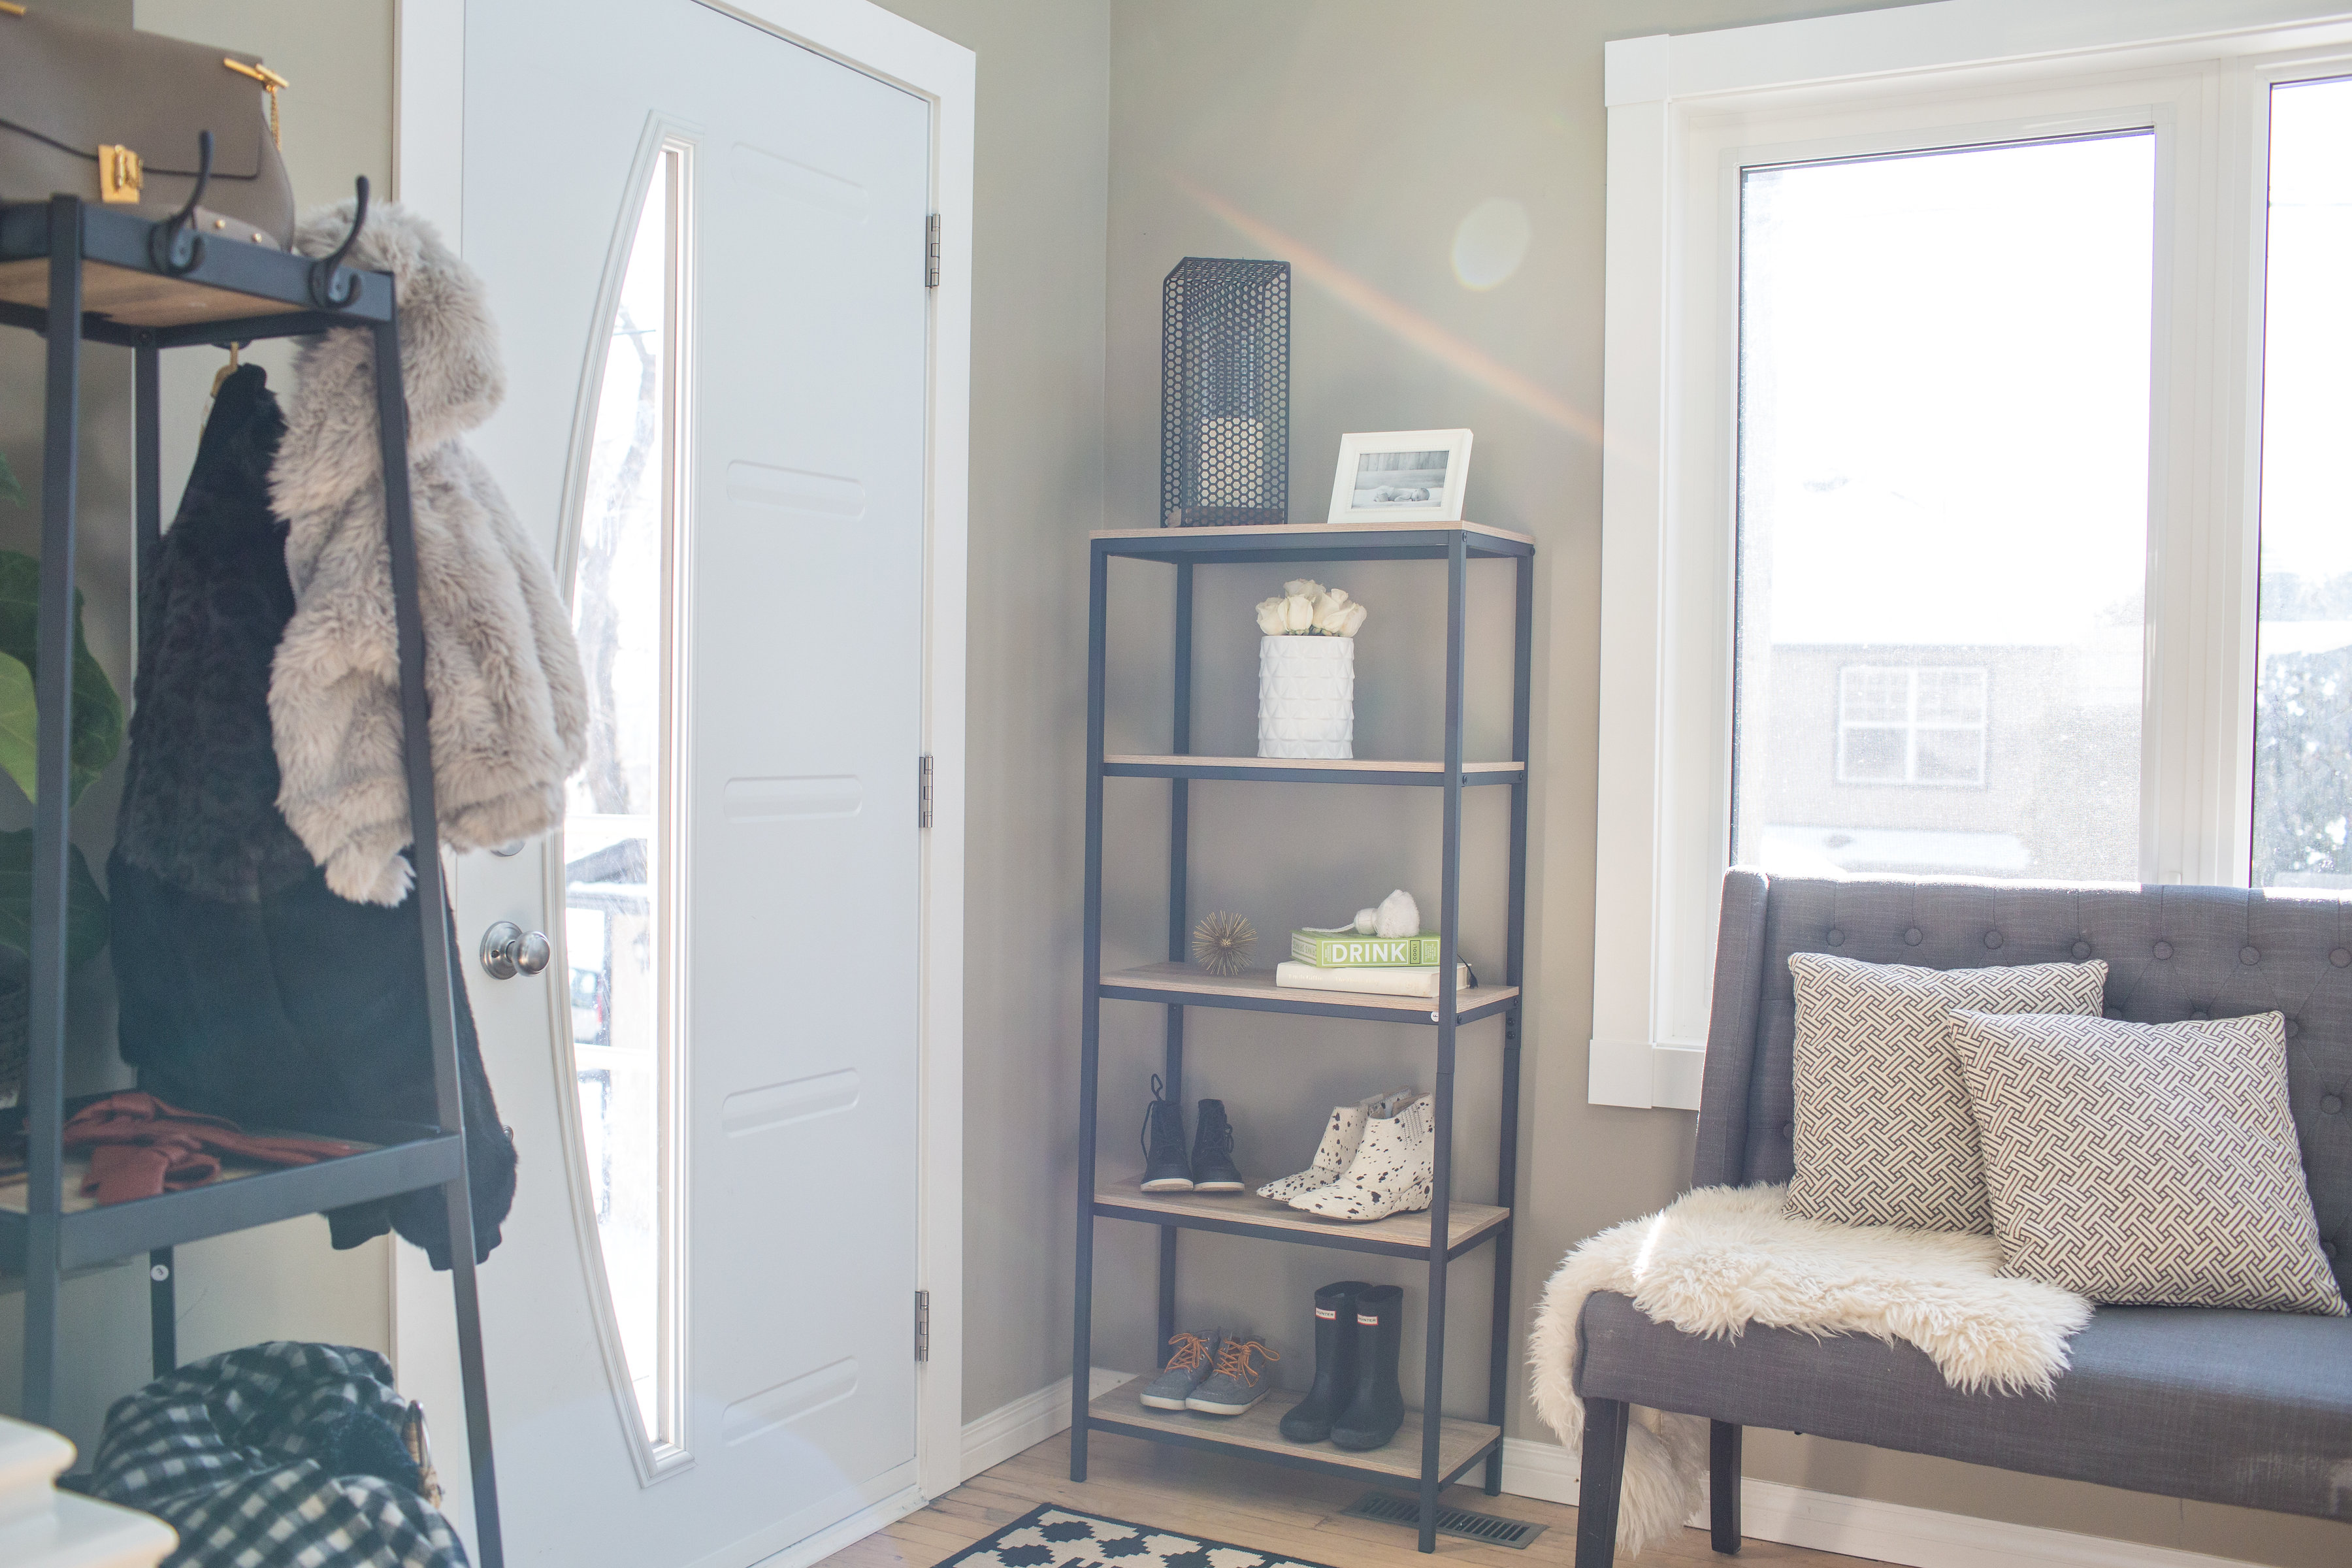 They Have Tons Of Pieces That Will Fit Any Space: From Desks, Coats Racks  To Shelving Units This Line Has So Many Modern Storage Solutions.